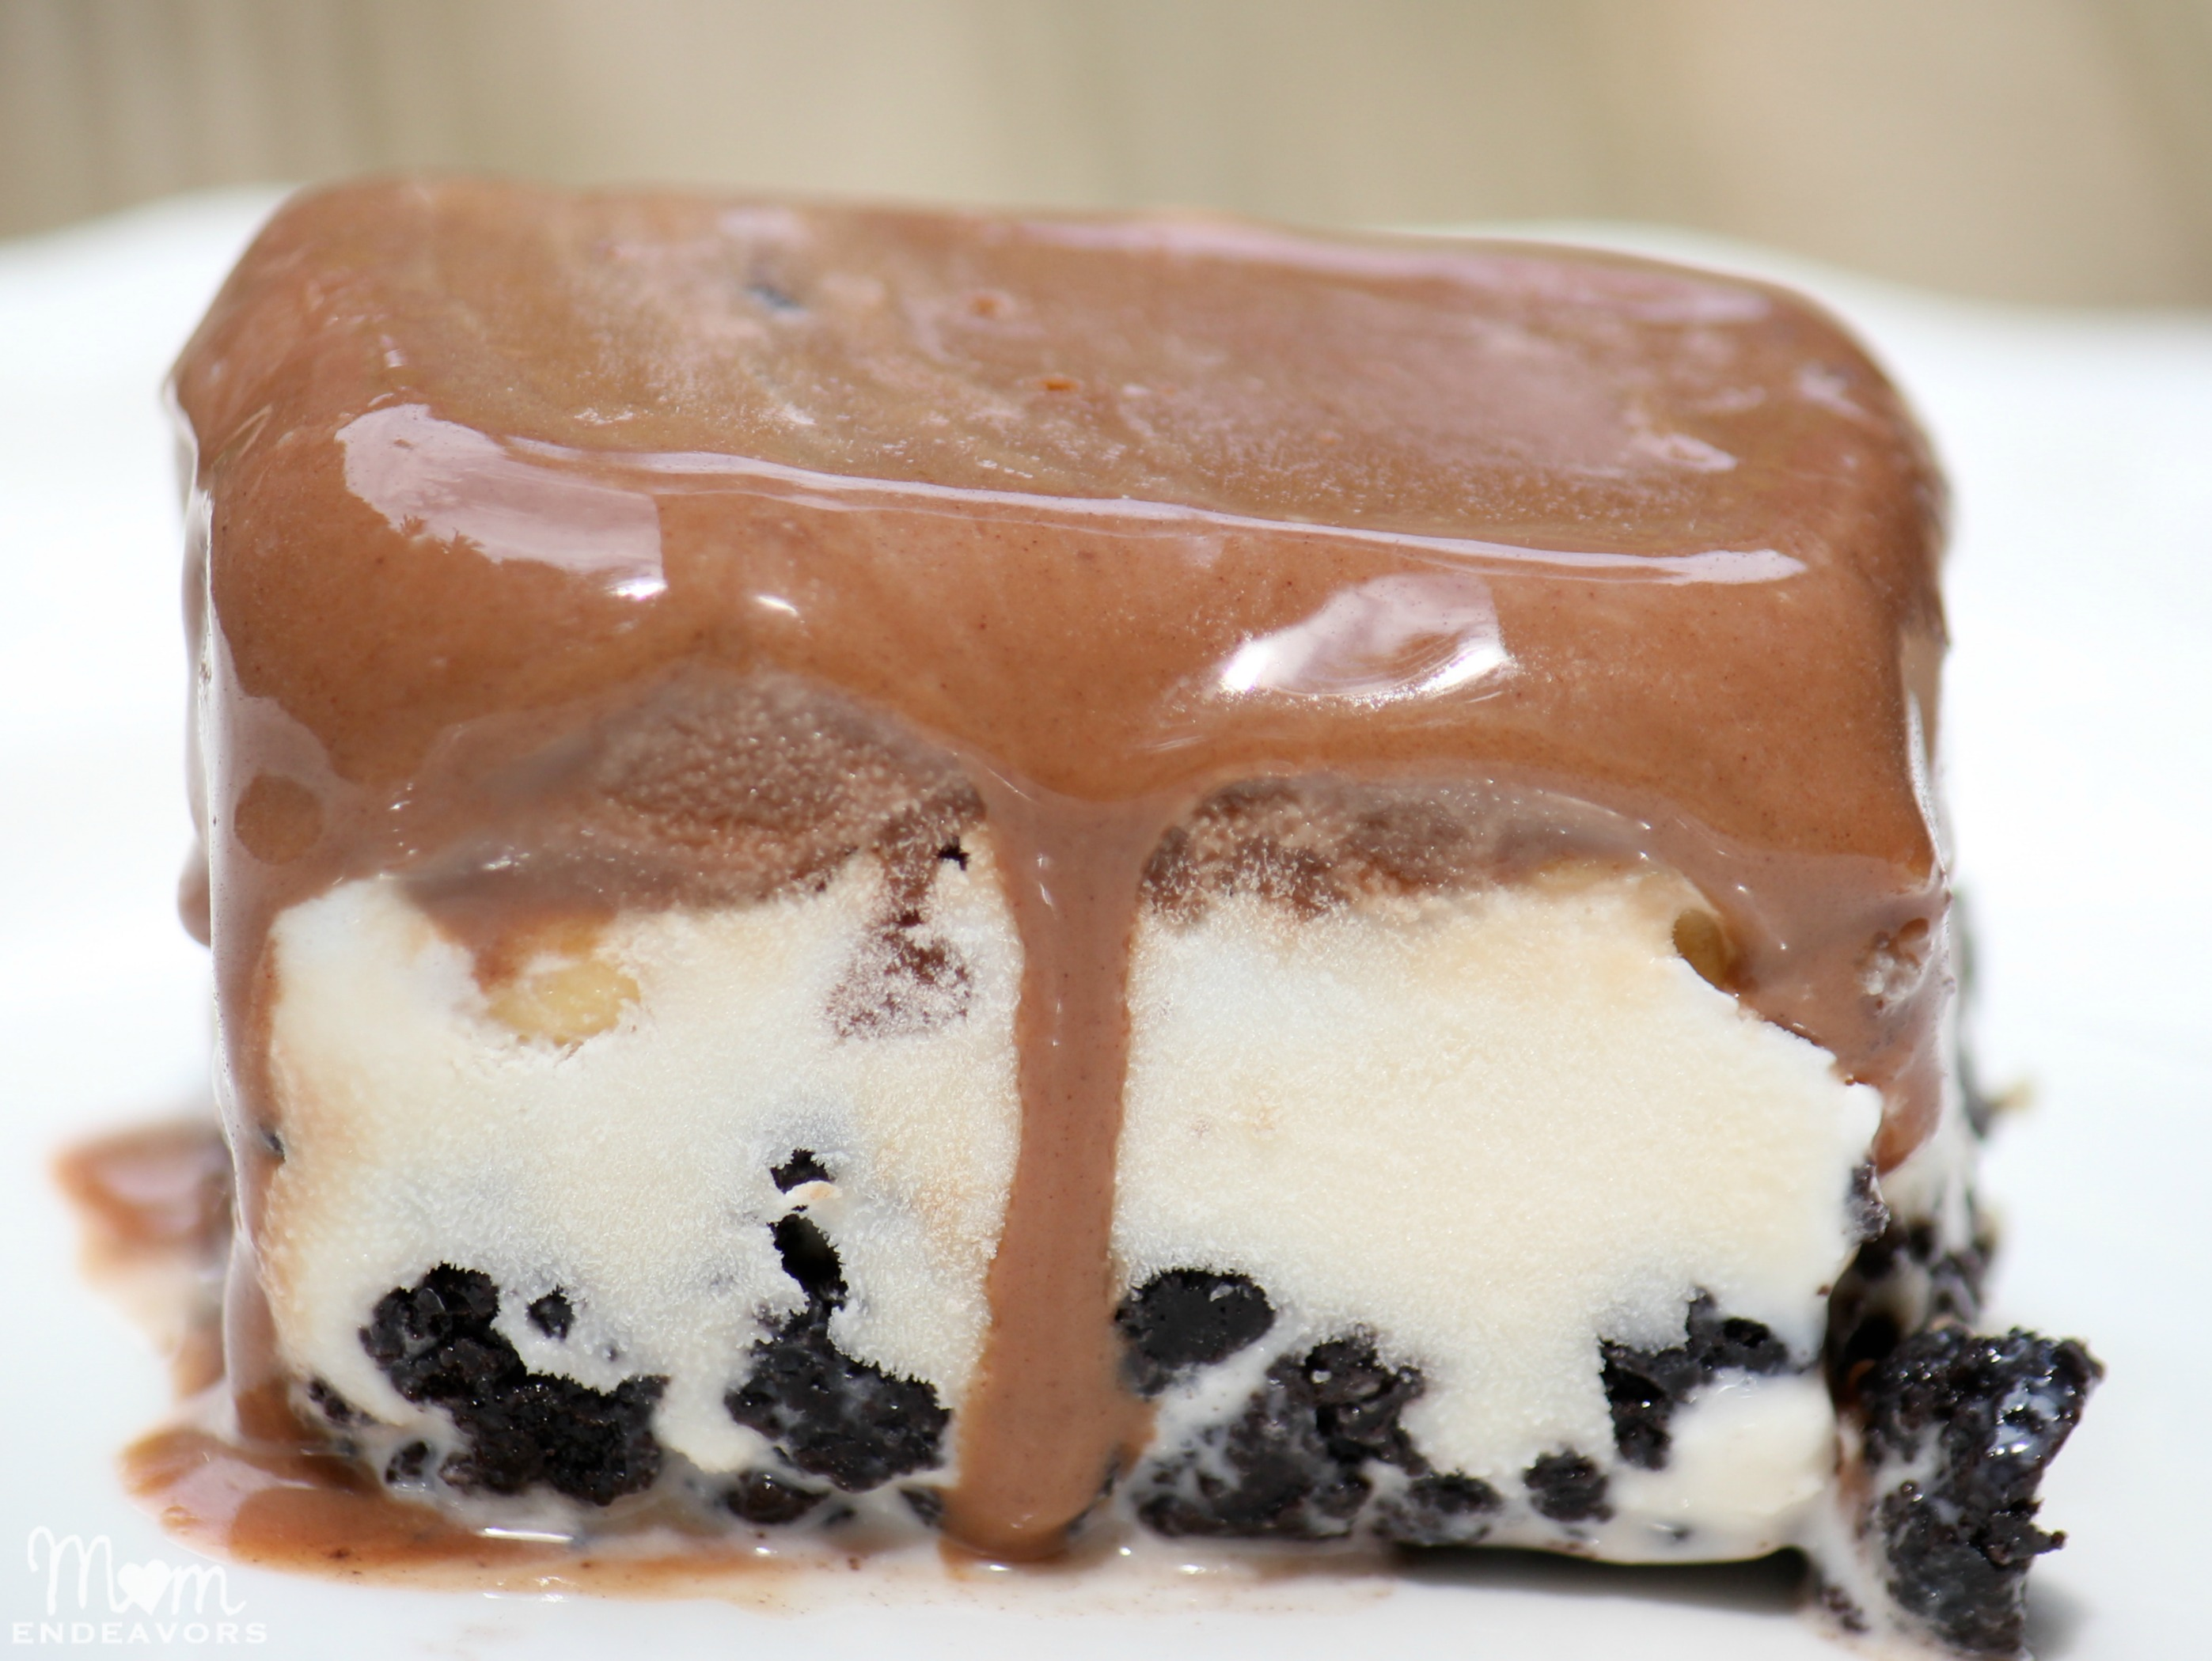 Homemade Buster Bar Dessert Recipe